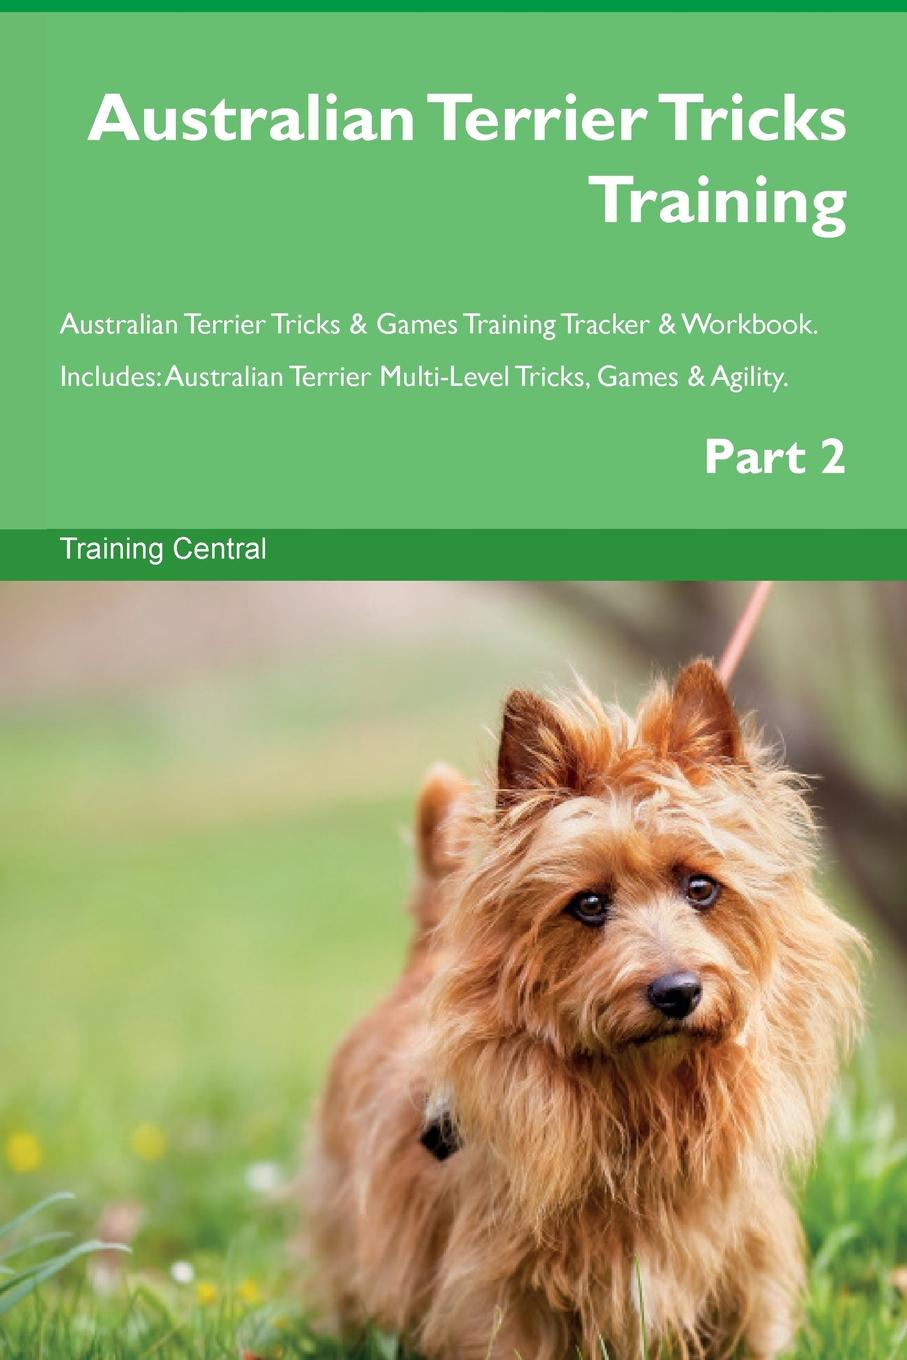 Training Central Australian Terrier Tricks Training Australian Terrier Tricks . Games Training Tracker . Workbook. Includes. Australian Terrier Multi-Level Tricks, Games . Agility. Part 2 this book loves you